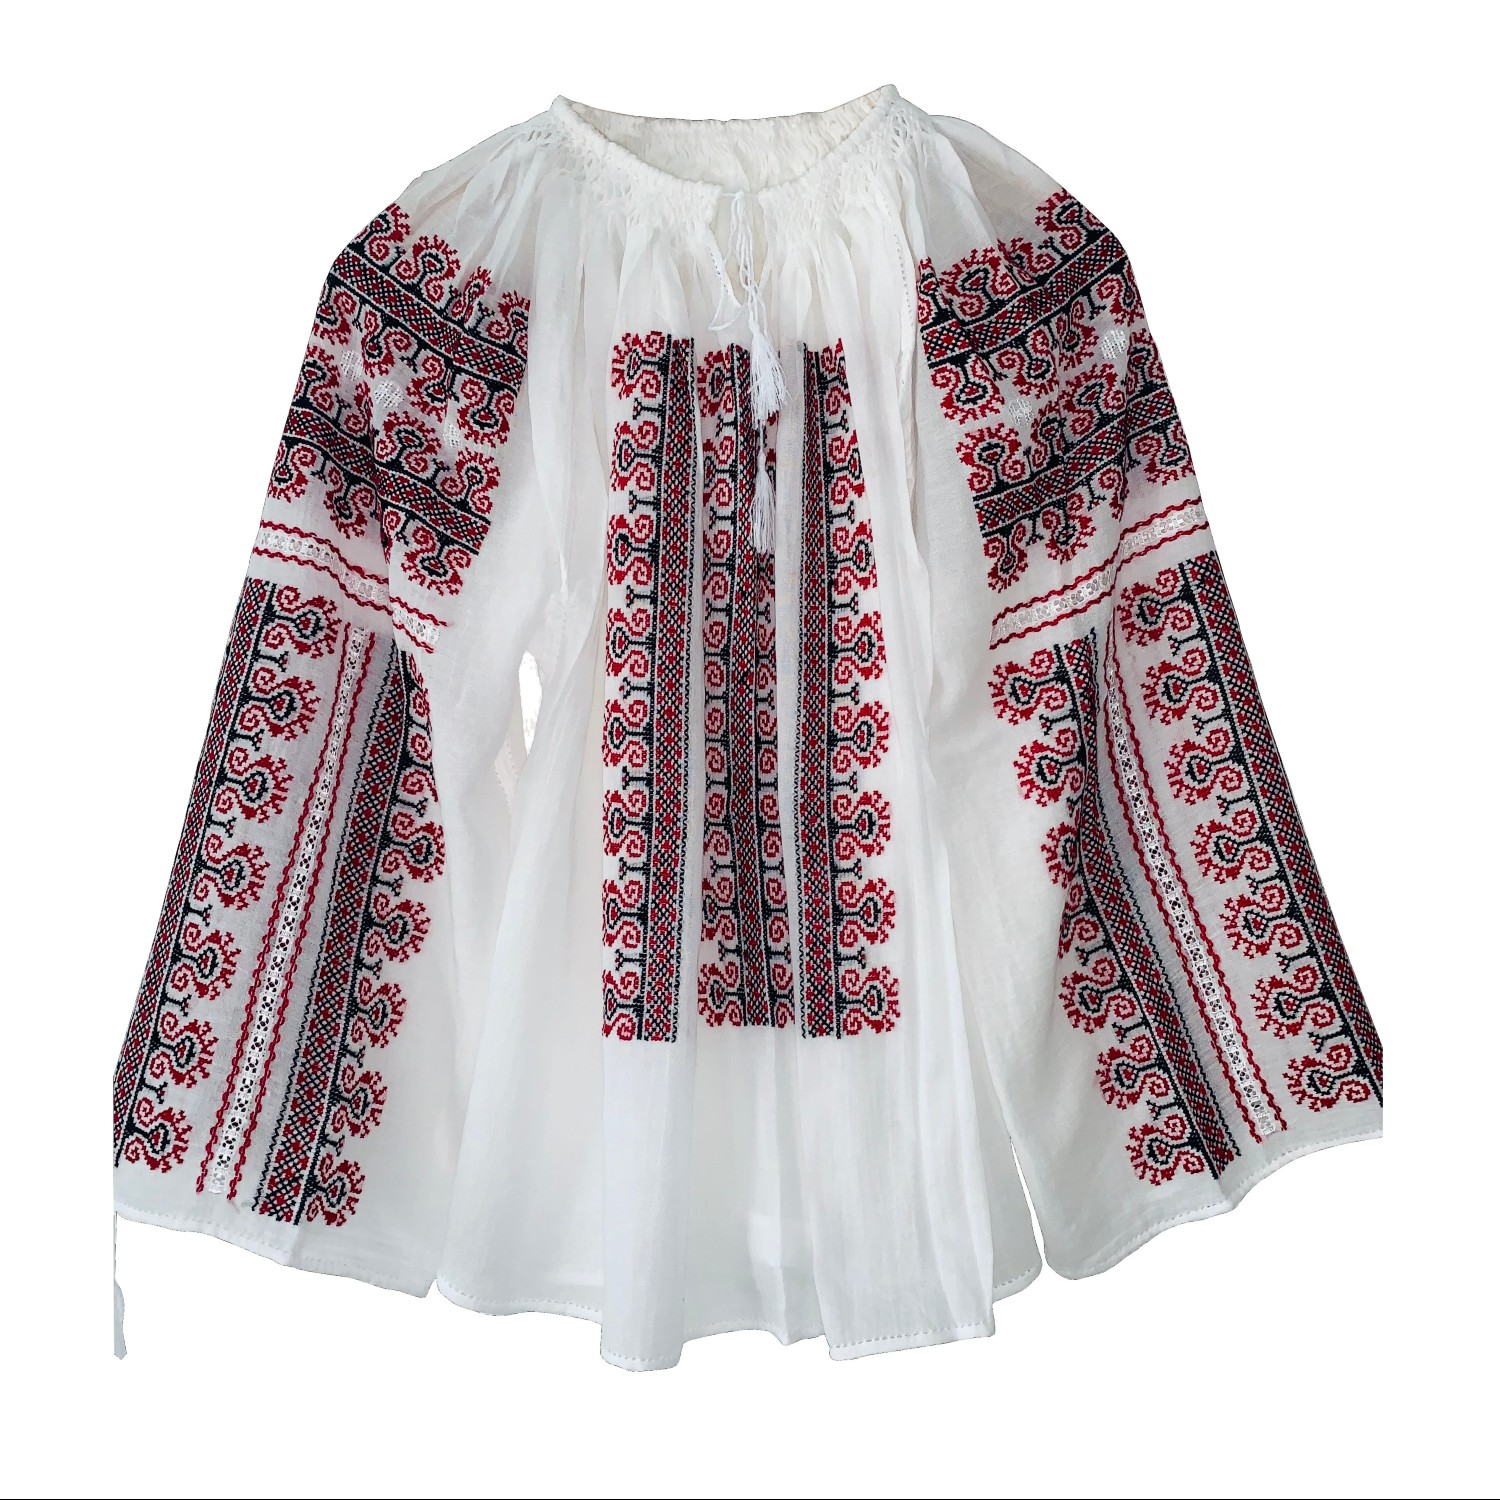 IE TRADIȚIONALĂ COD 18_Ie_Blouse_hand made_traditional_RafGallery_romanian_art_VR_gallery